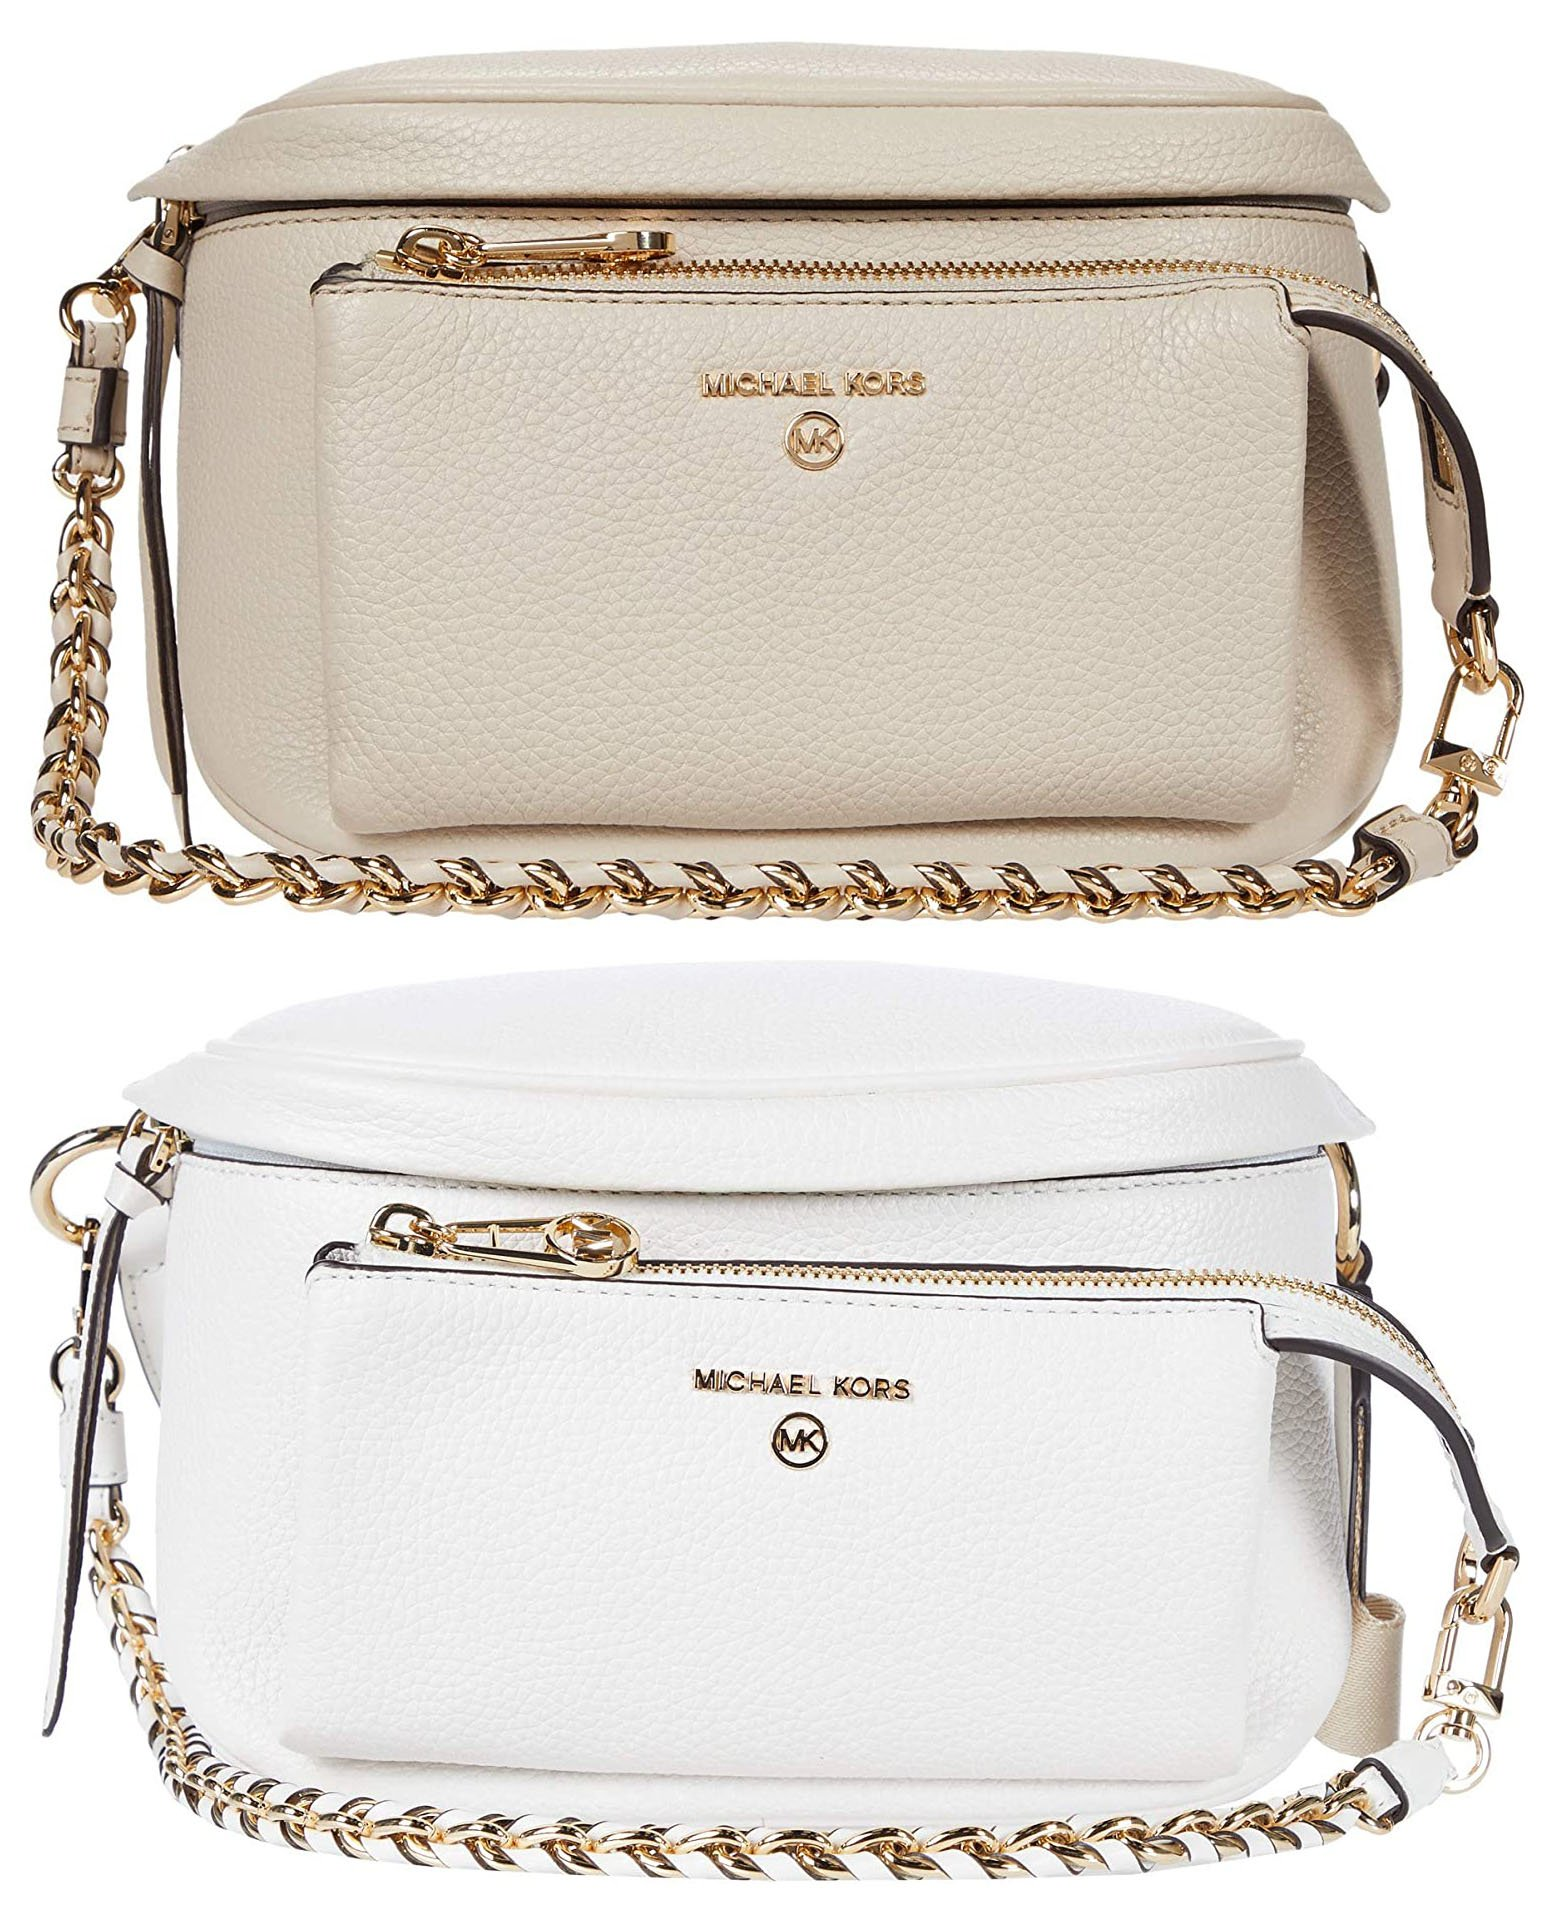 You can wear the Michael Kors' Slater sling pack around the waist, over the shoulder or across the body